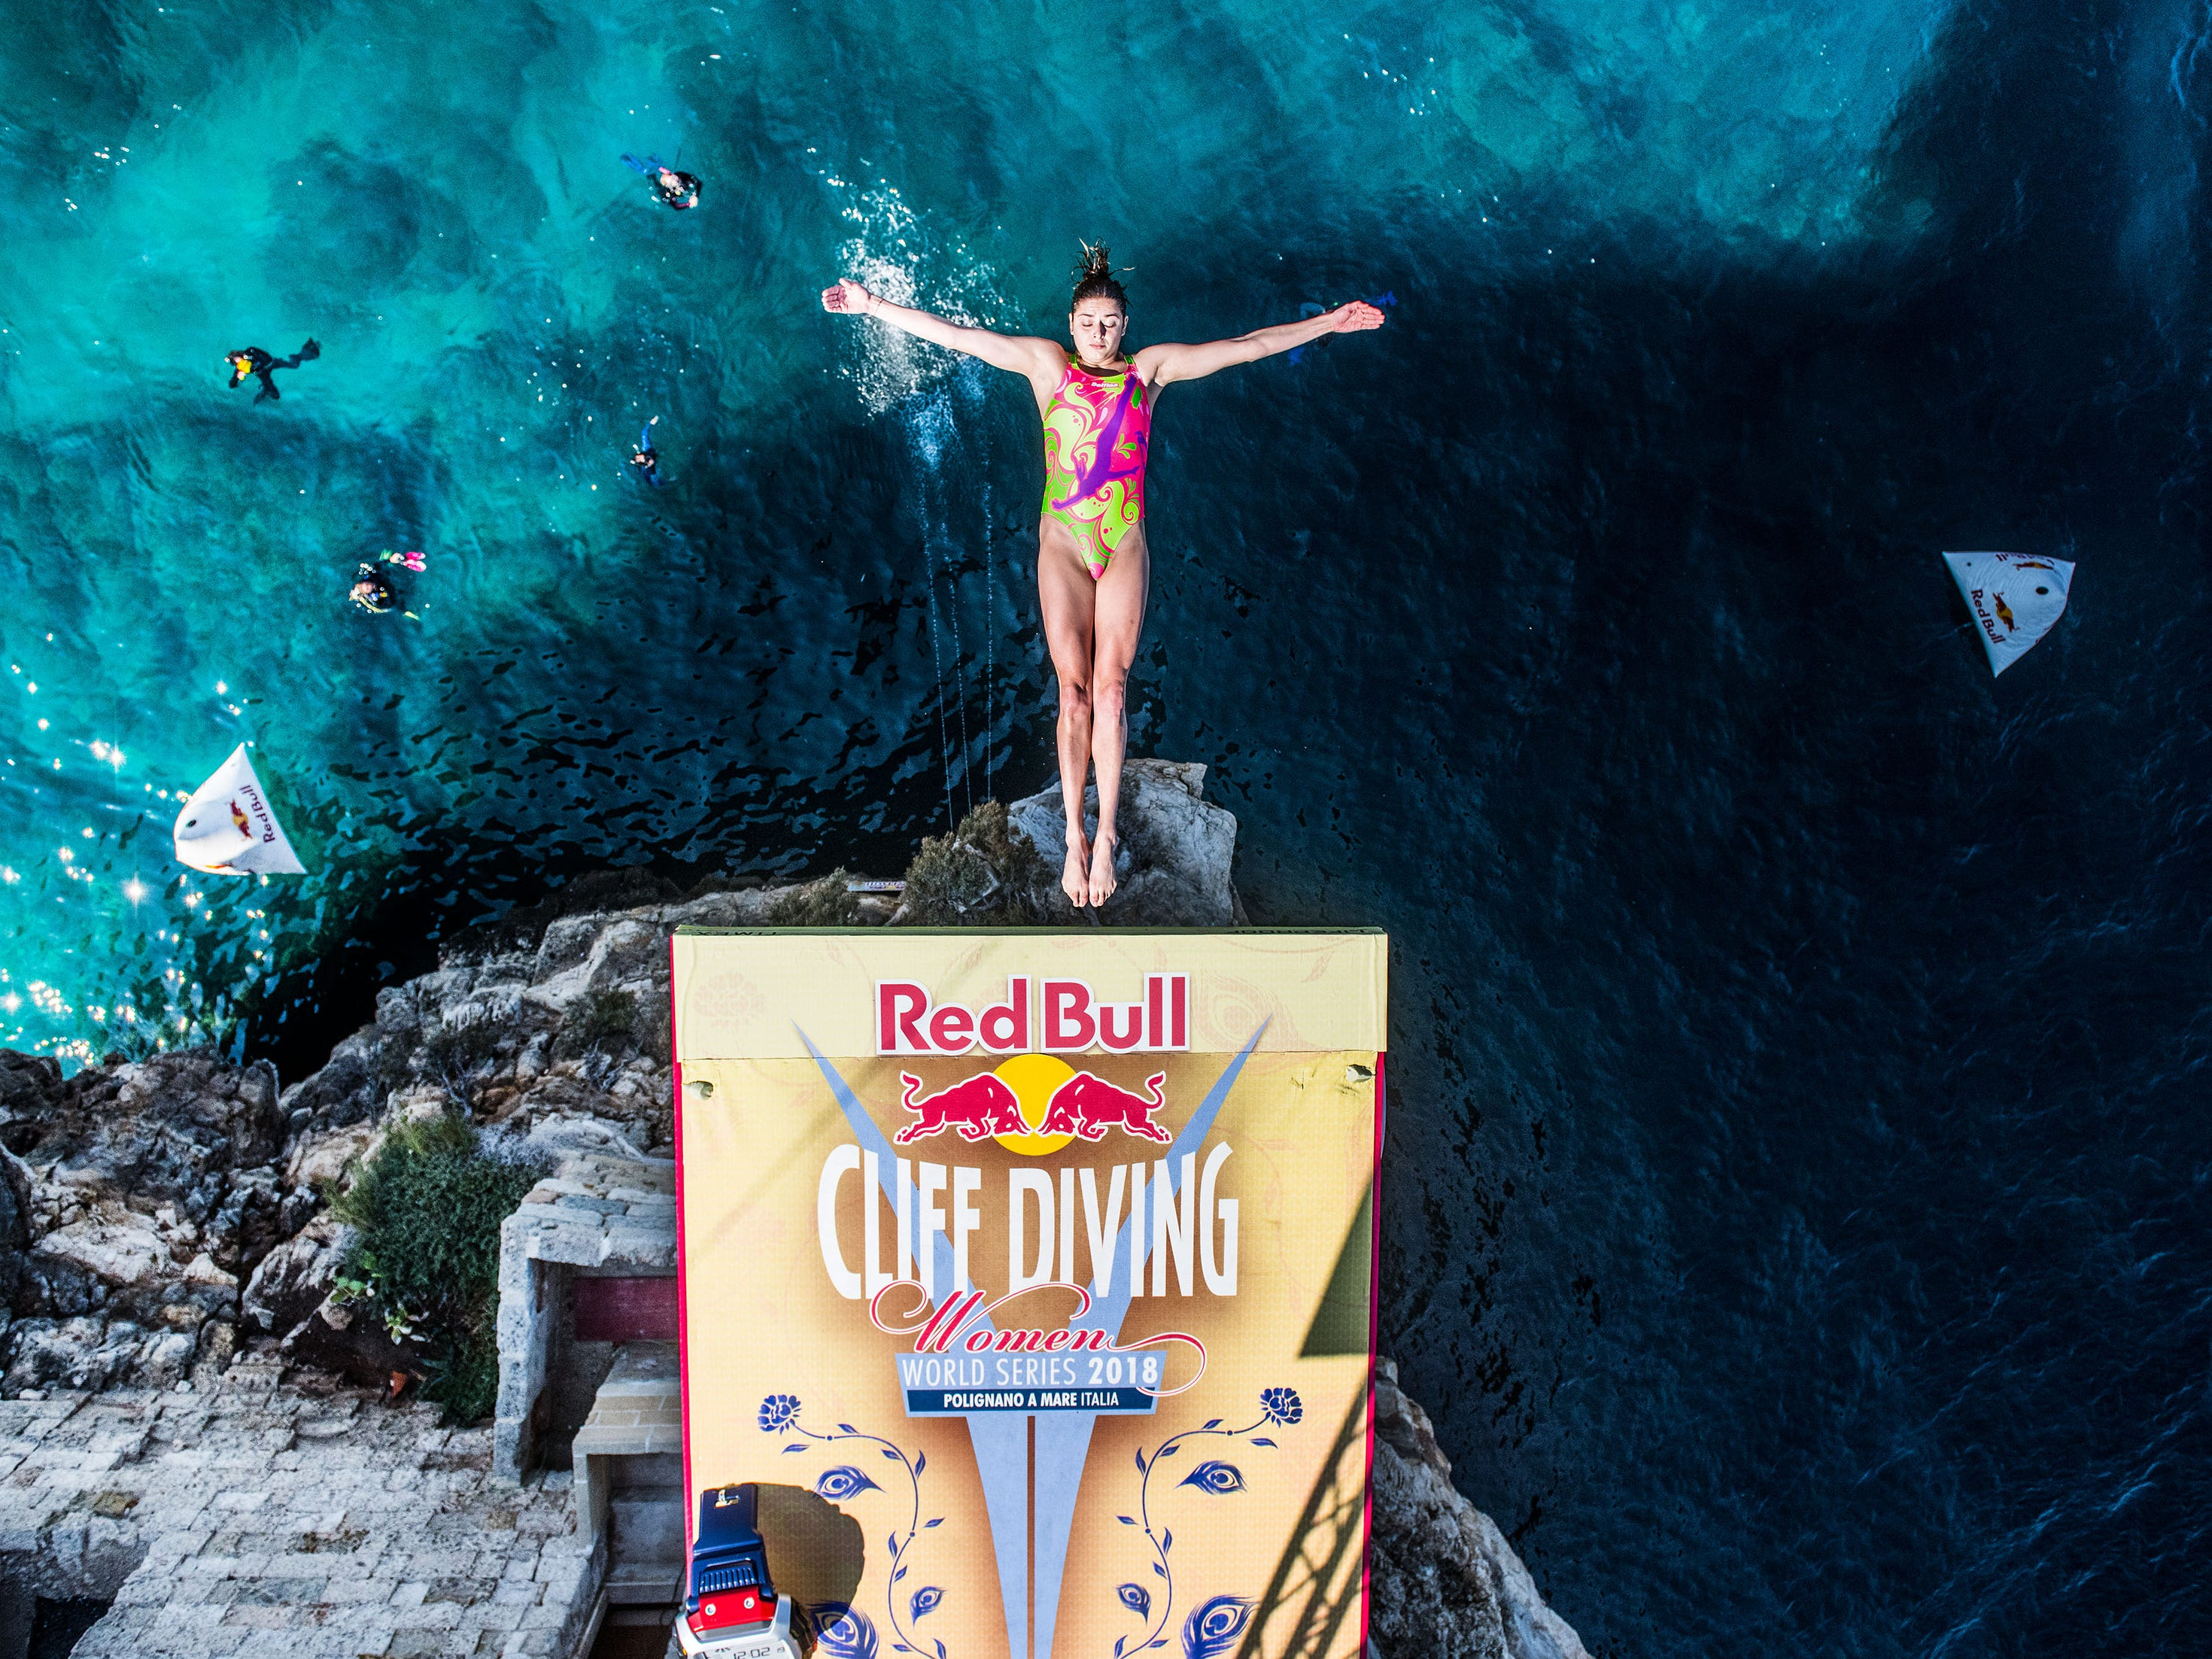 Yana Nestsiarava of Belarus dives from the 21-meter platform during the first competition day of the seventh and final stop of the Red Bull Cliff Diving World Series on Sept. 22, 2018 at Polignano a Mare, Italy.